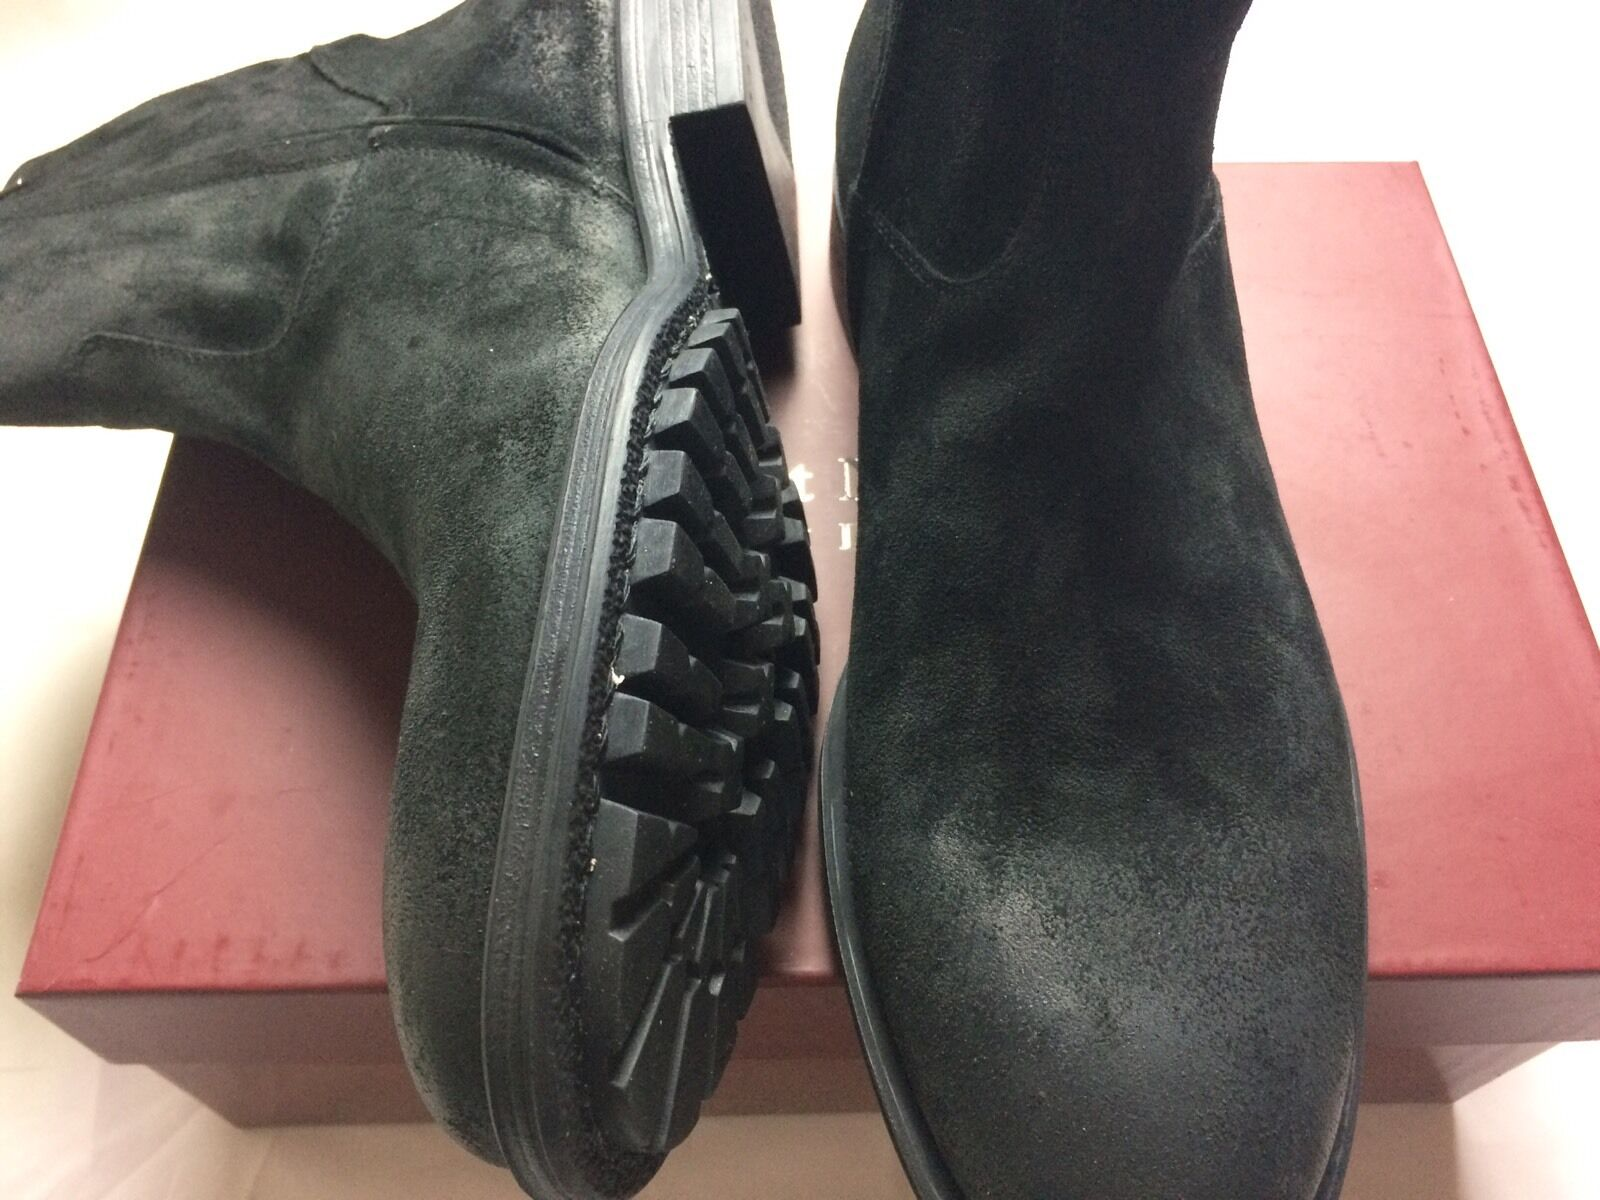 The Boot New York Leather Boots Men's Men's Men's Hand Made In Italy_11 D/M Compare at $399 704fa5